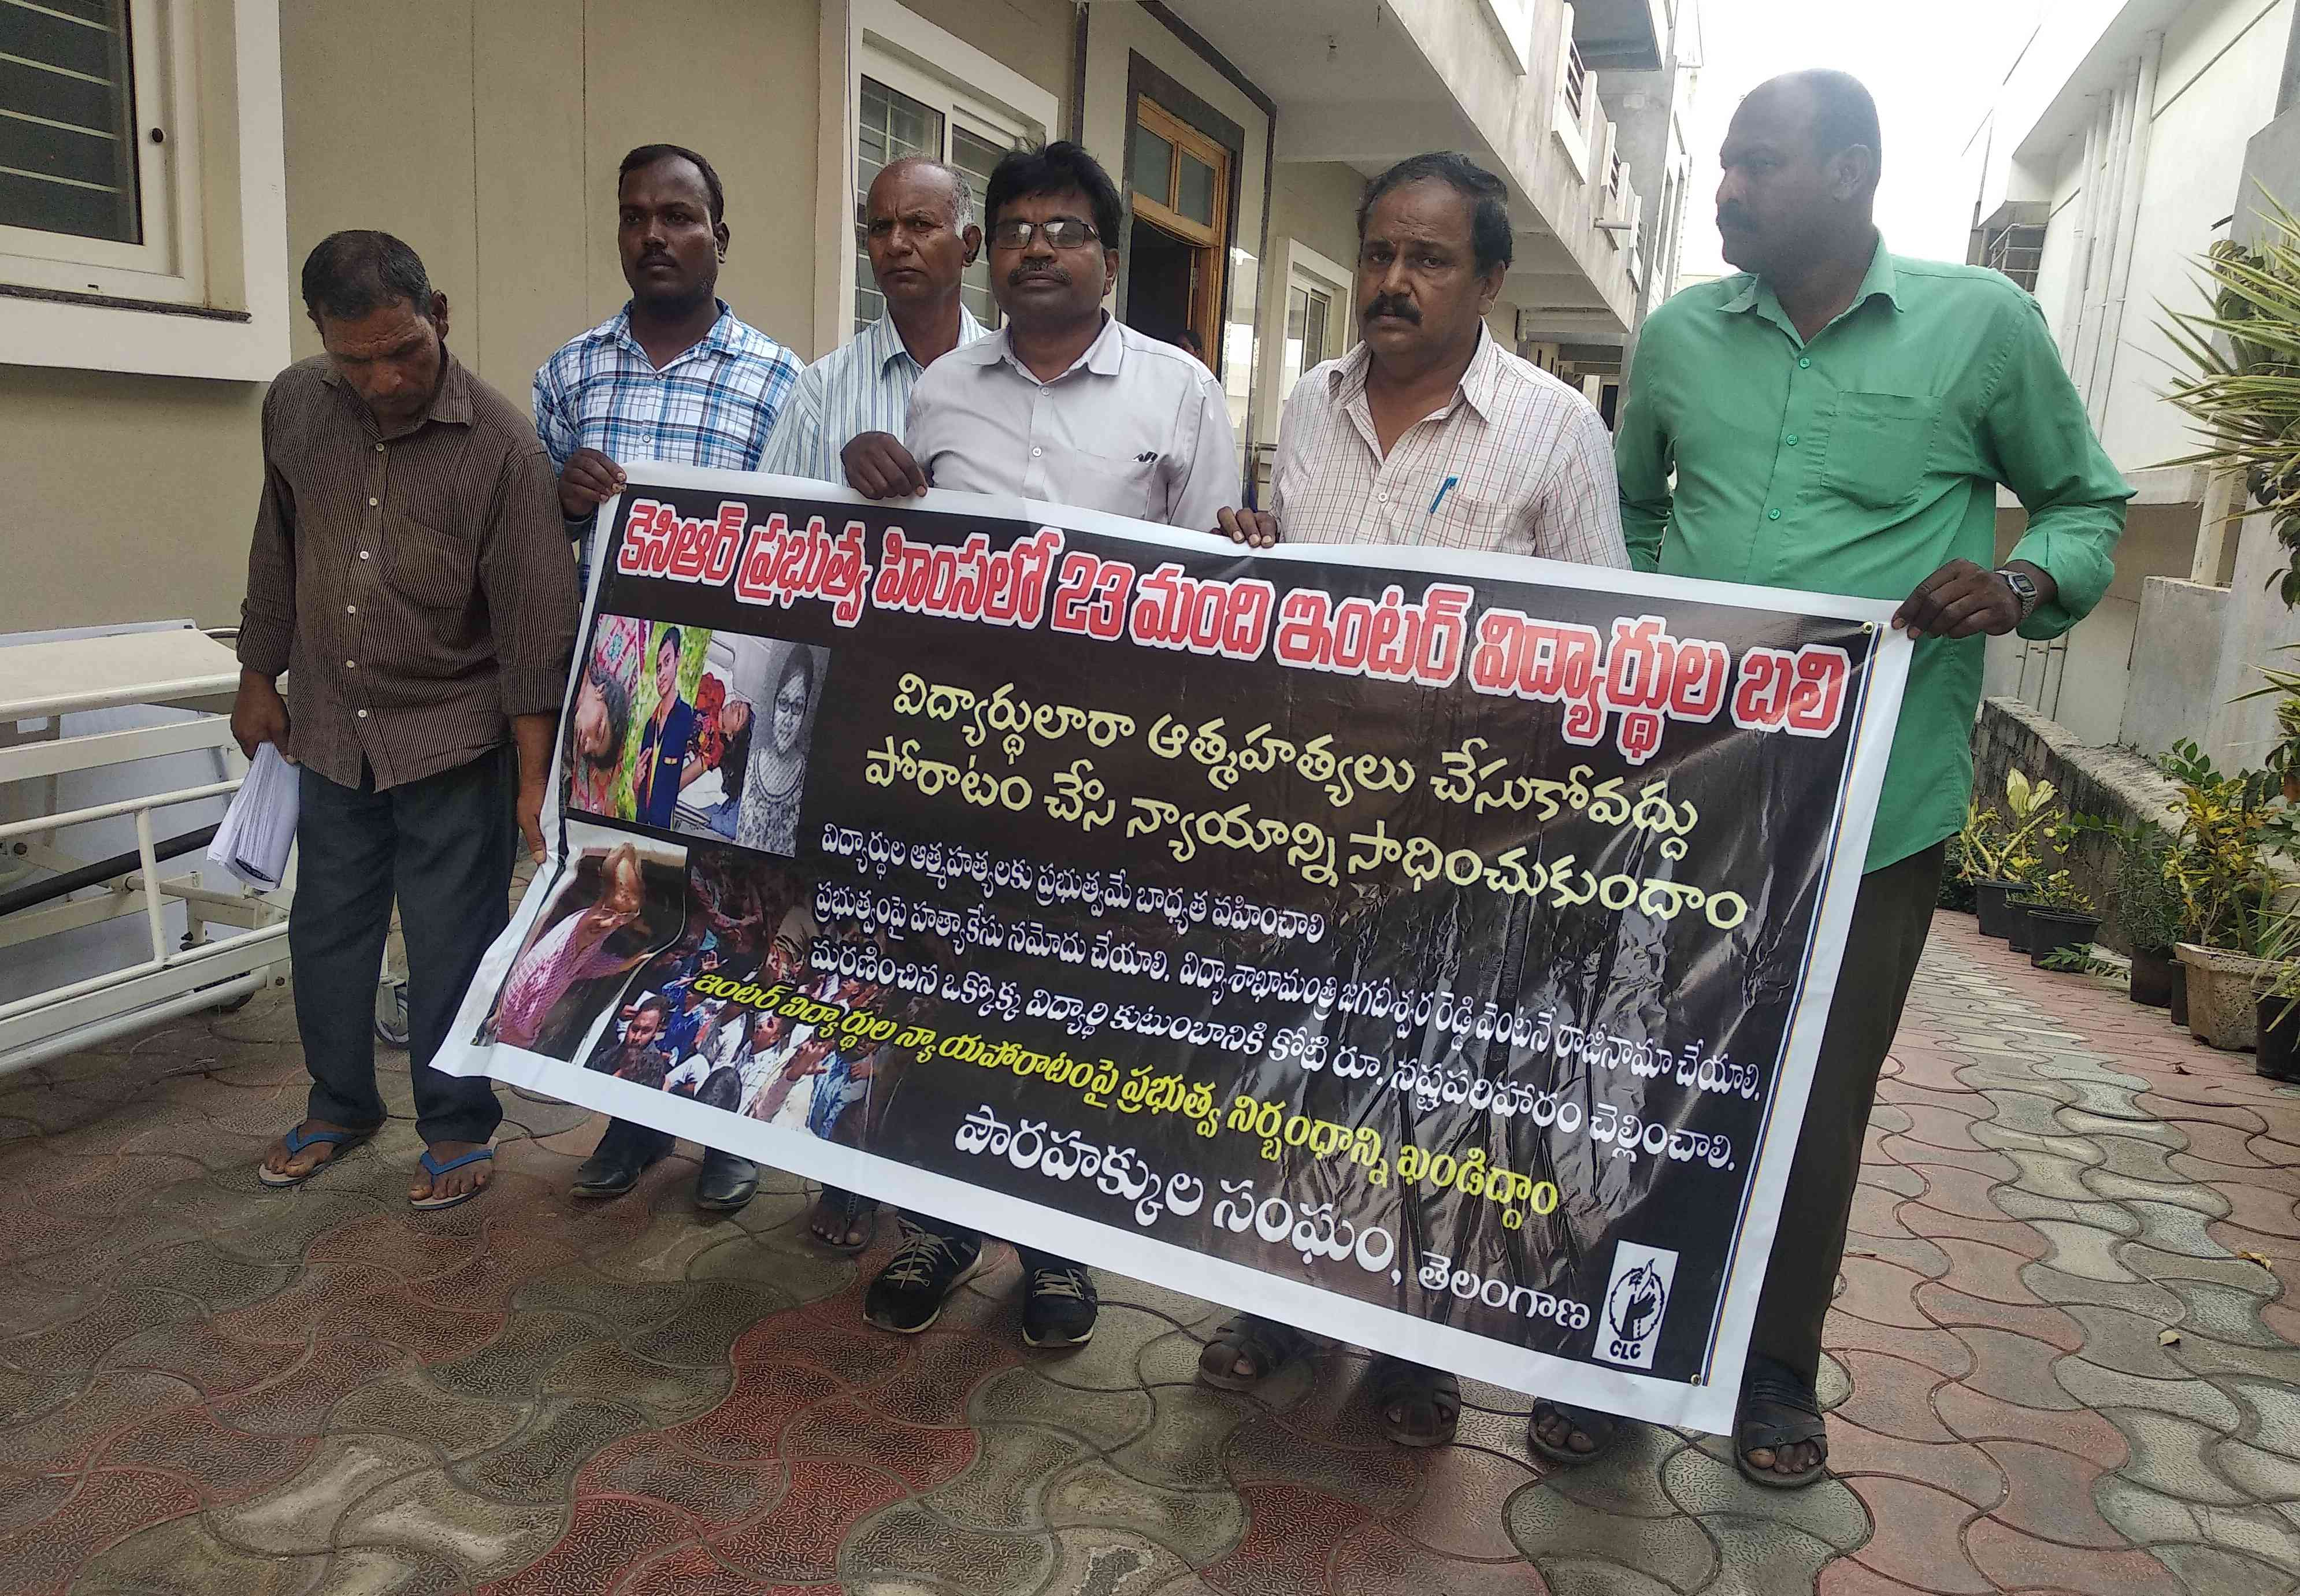 Nakka Narayana Rao and fellow activists of the Civil Liberties Committee hold a banner condemning the Telangana government's apathy towards student suicides. Photo credit: S Senthalir